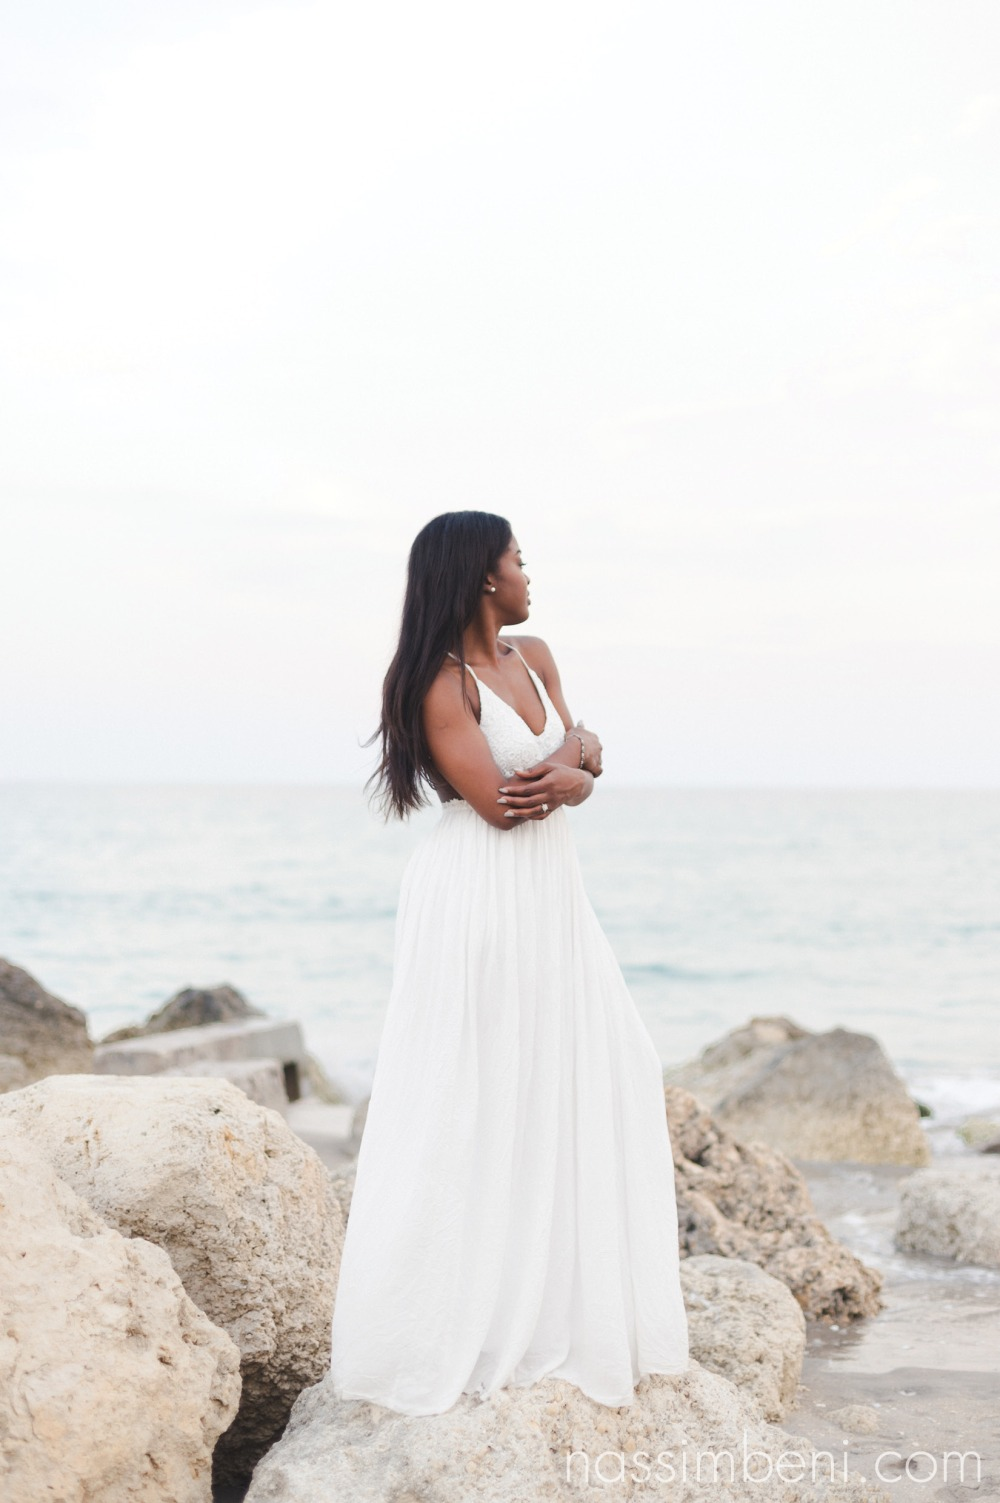 elegant soon to be bride by the beach near worth avenue by nassimbeni photography